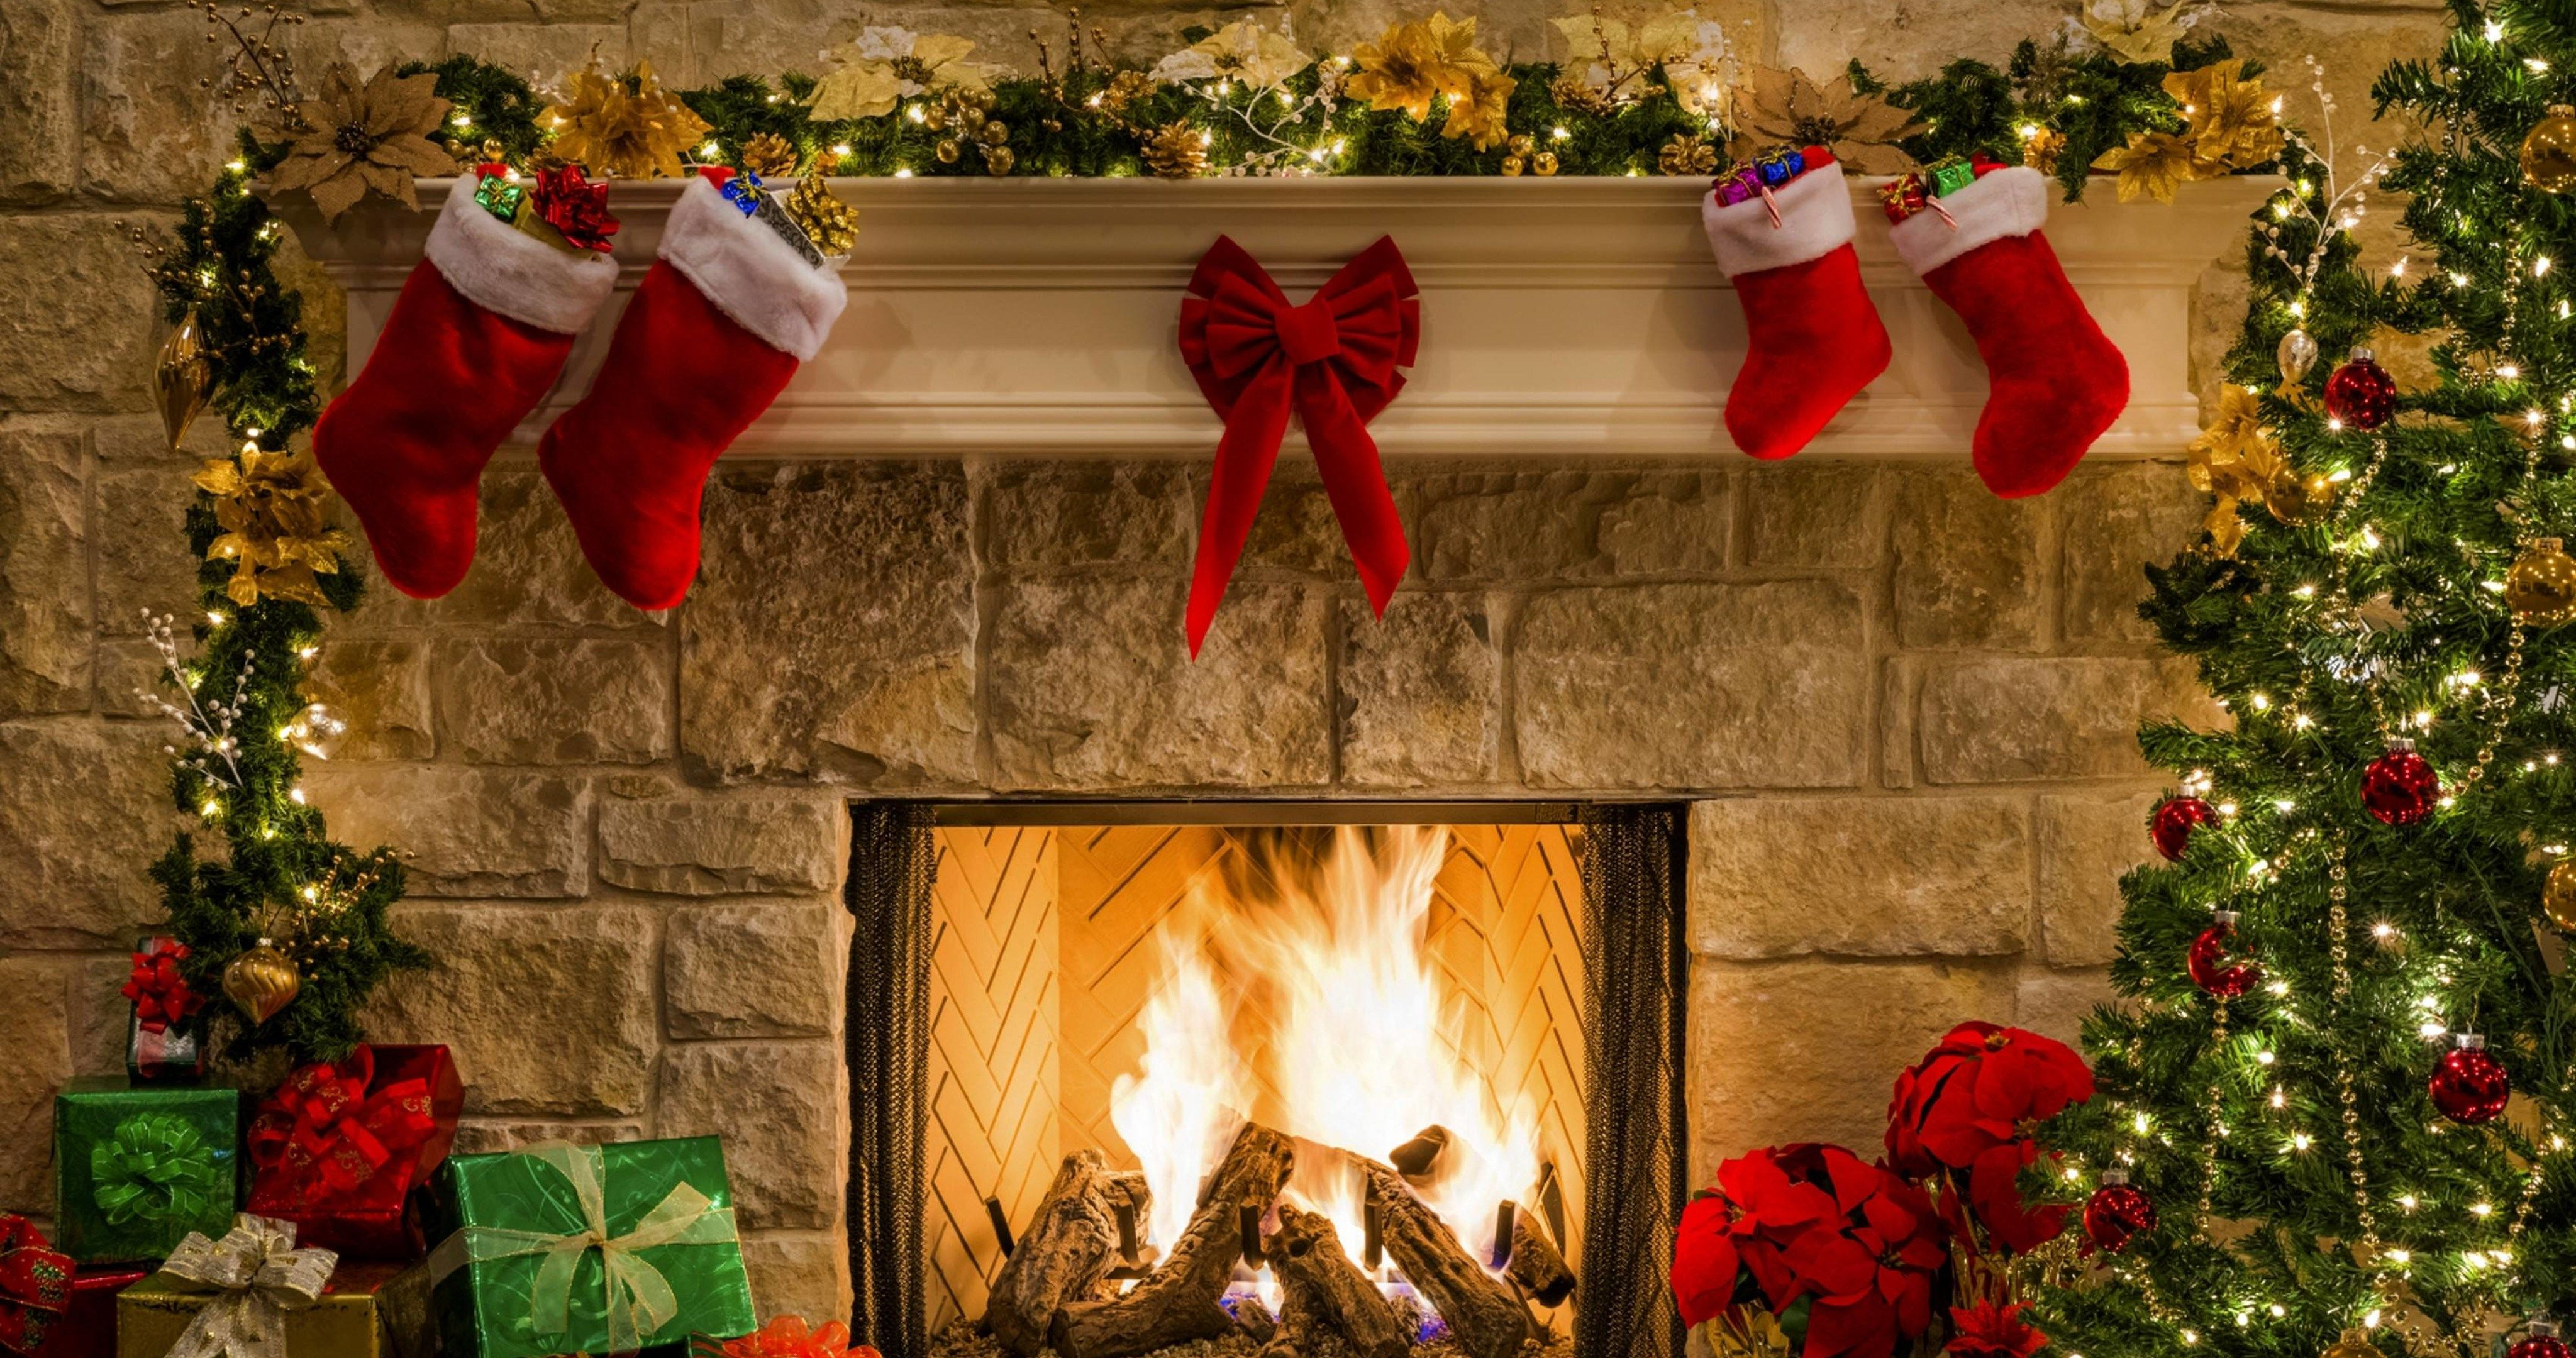 Happy New Year Fireplace Wallpaper 4k Ultra Hd Wallpaper